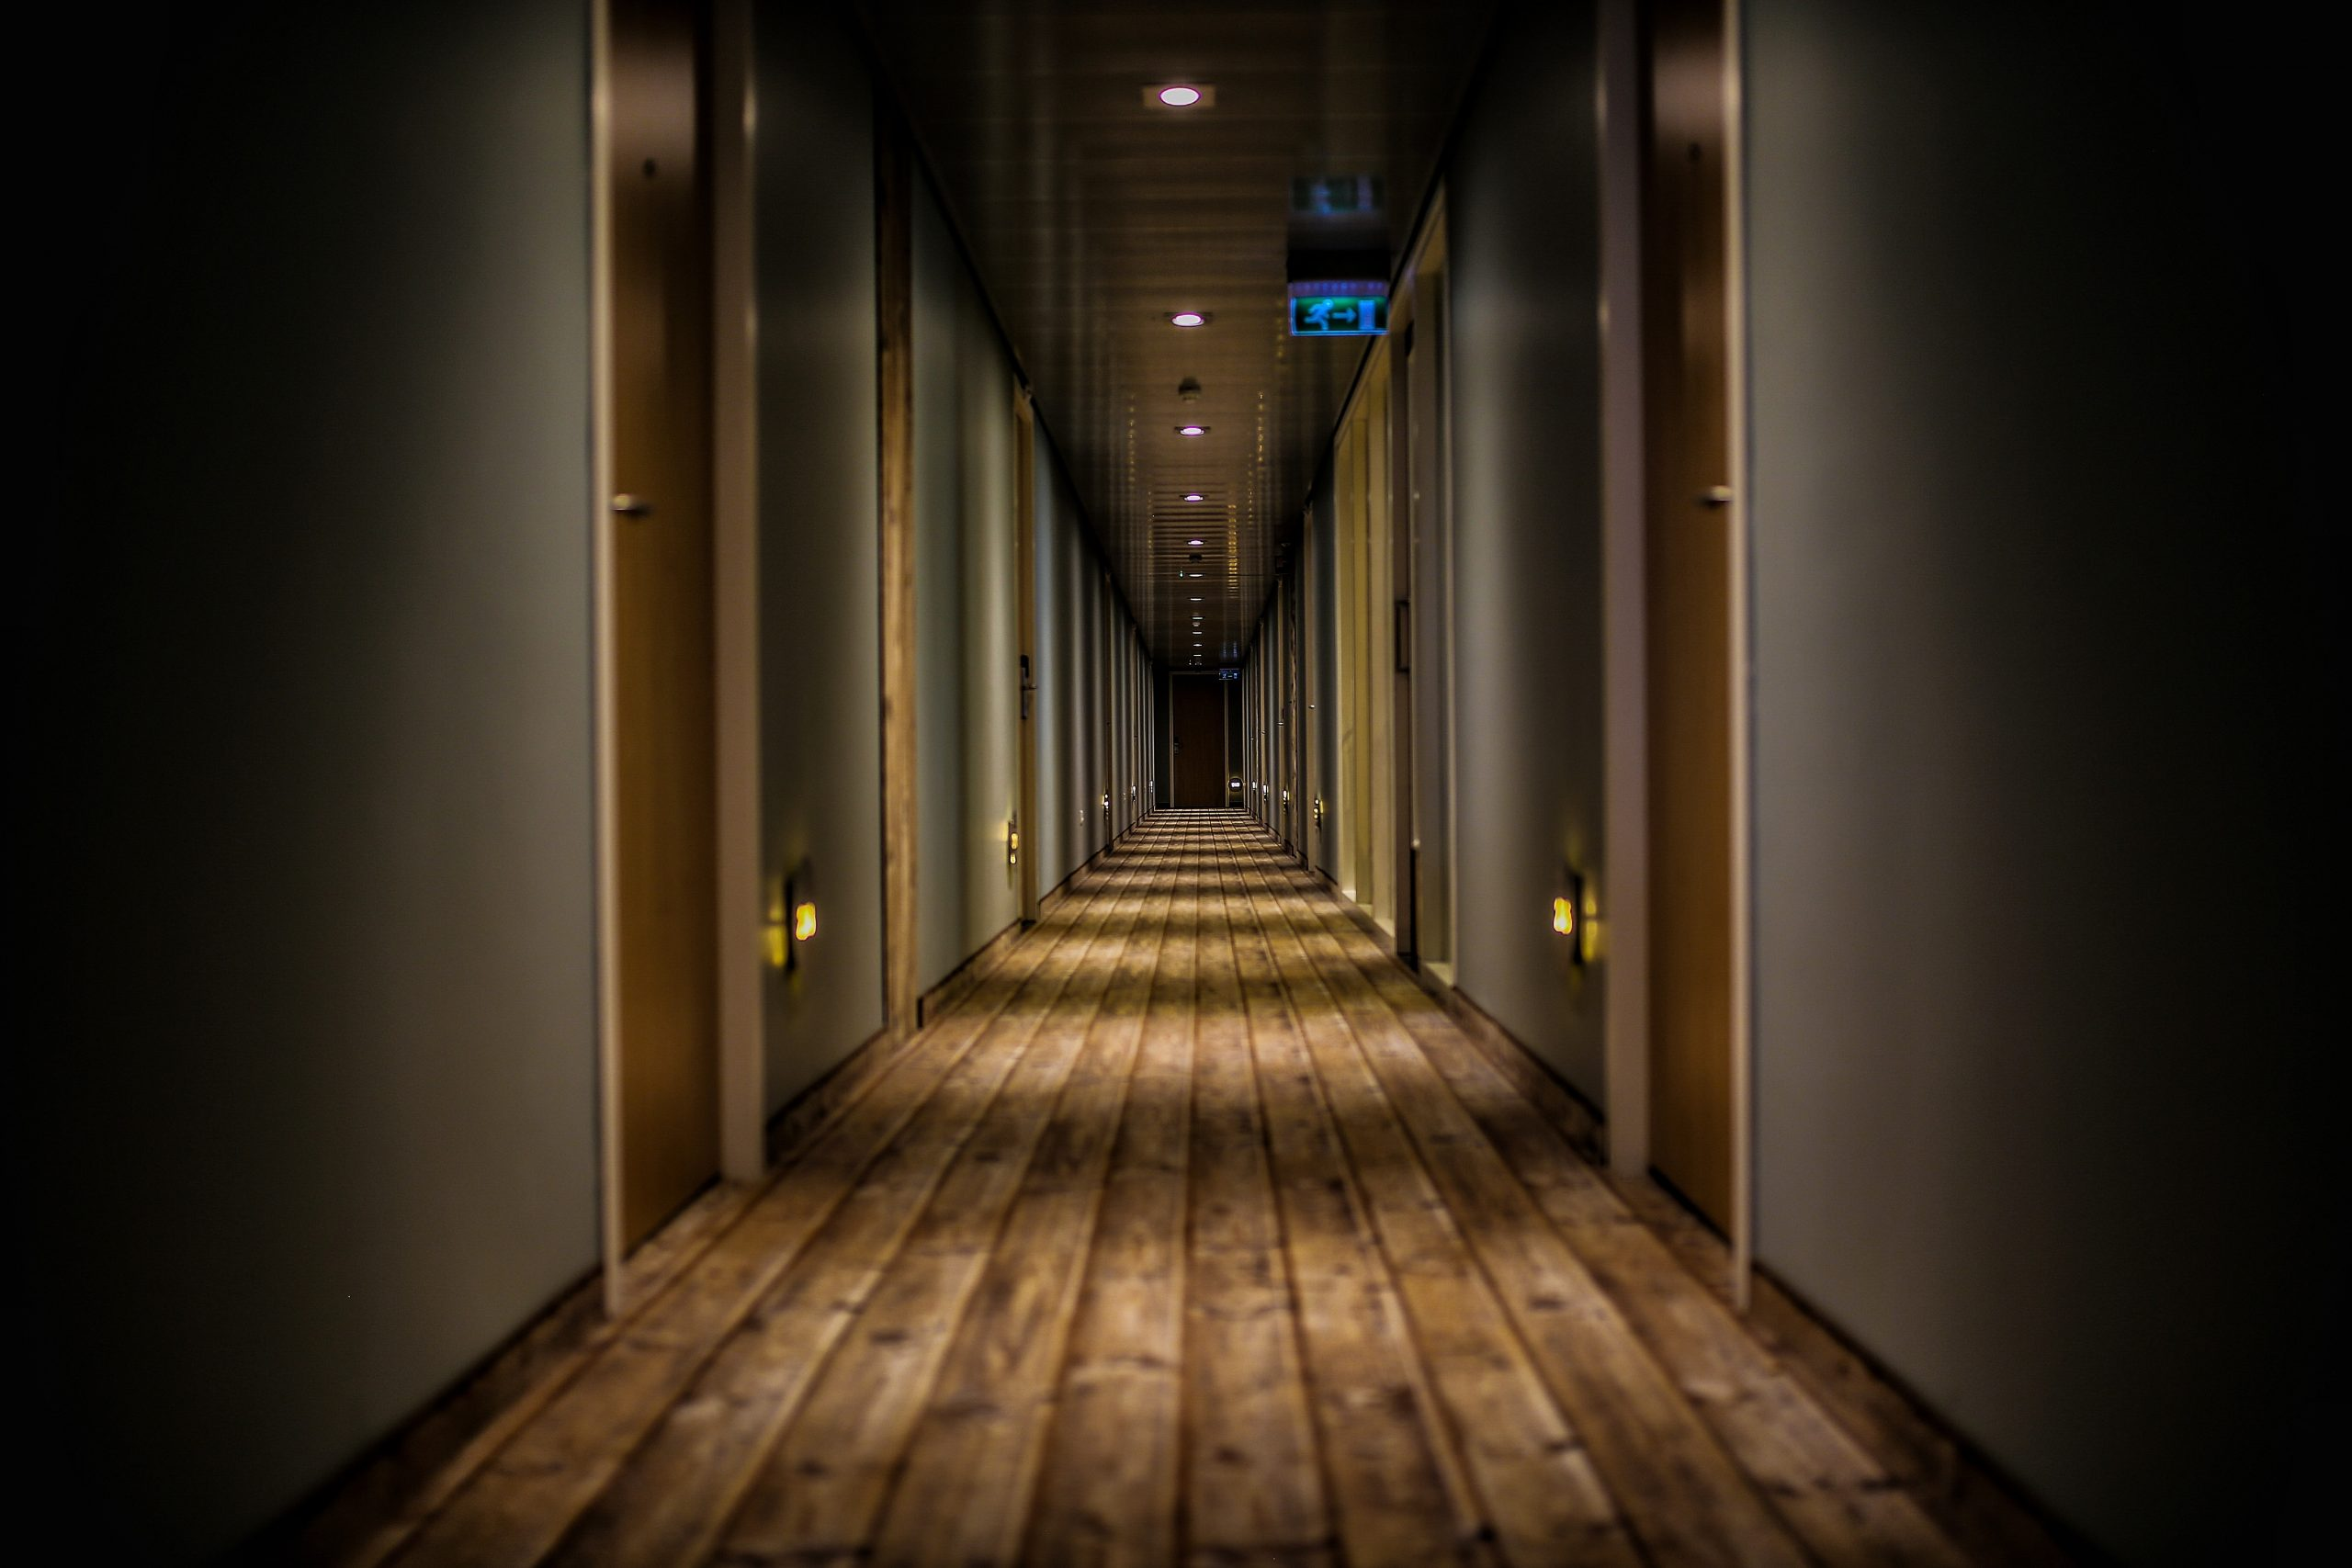 A Hotel Corridor - But what hotel technology can keep this safe?